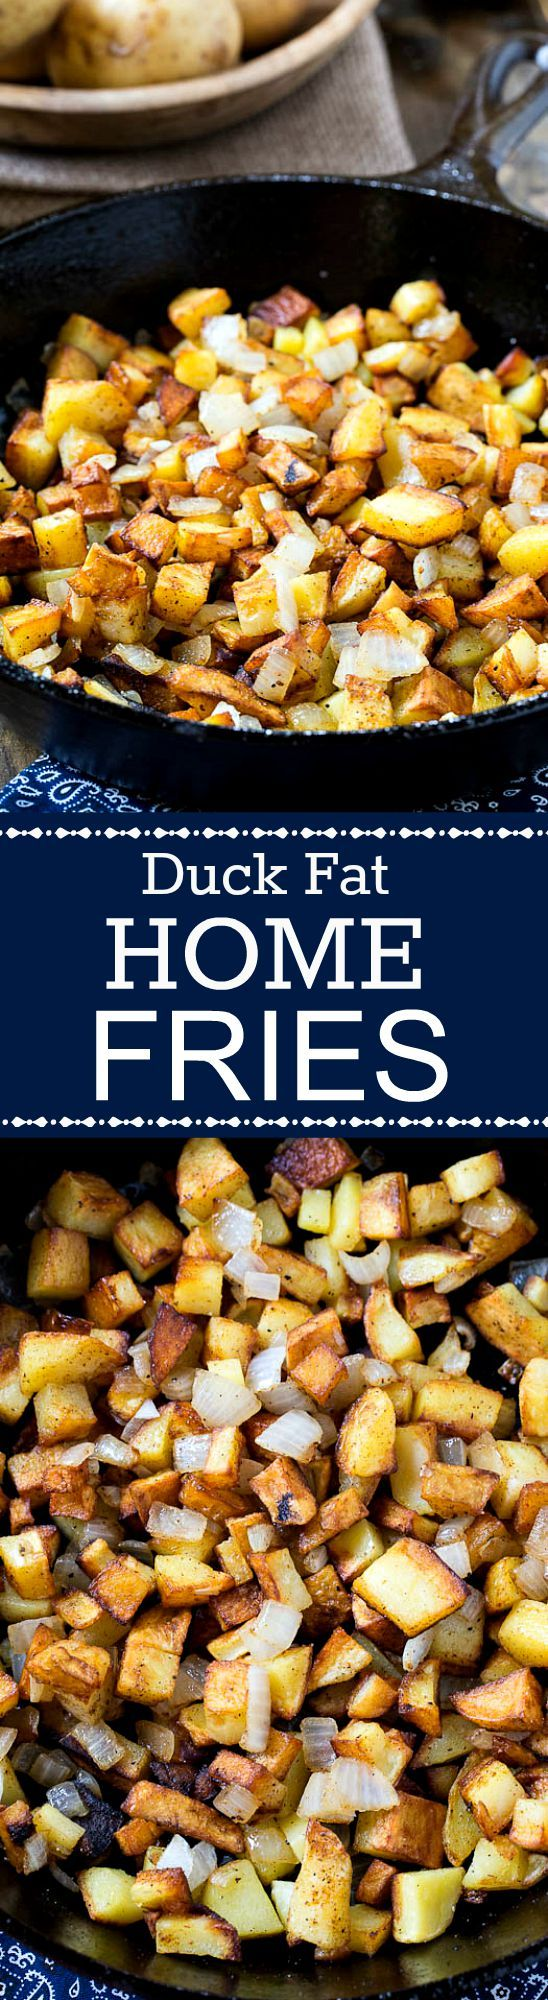 Extra Crispy Duck Fat-Fried Fingerling Potatoes Recipe ...